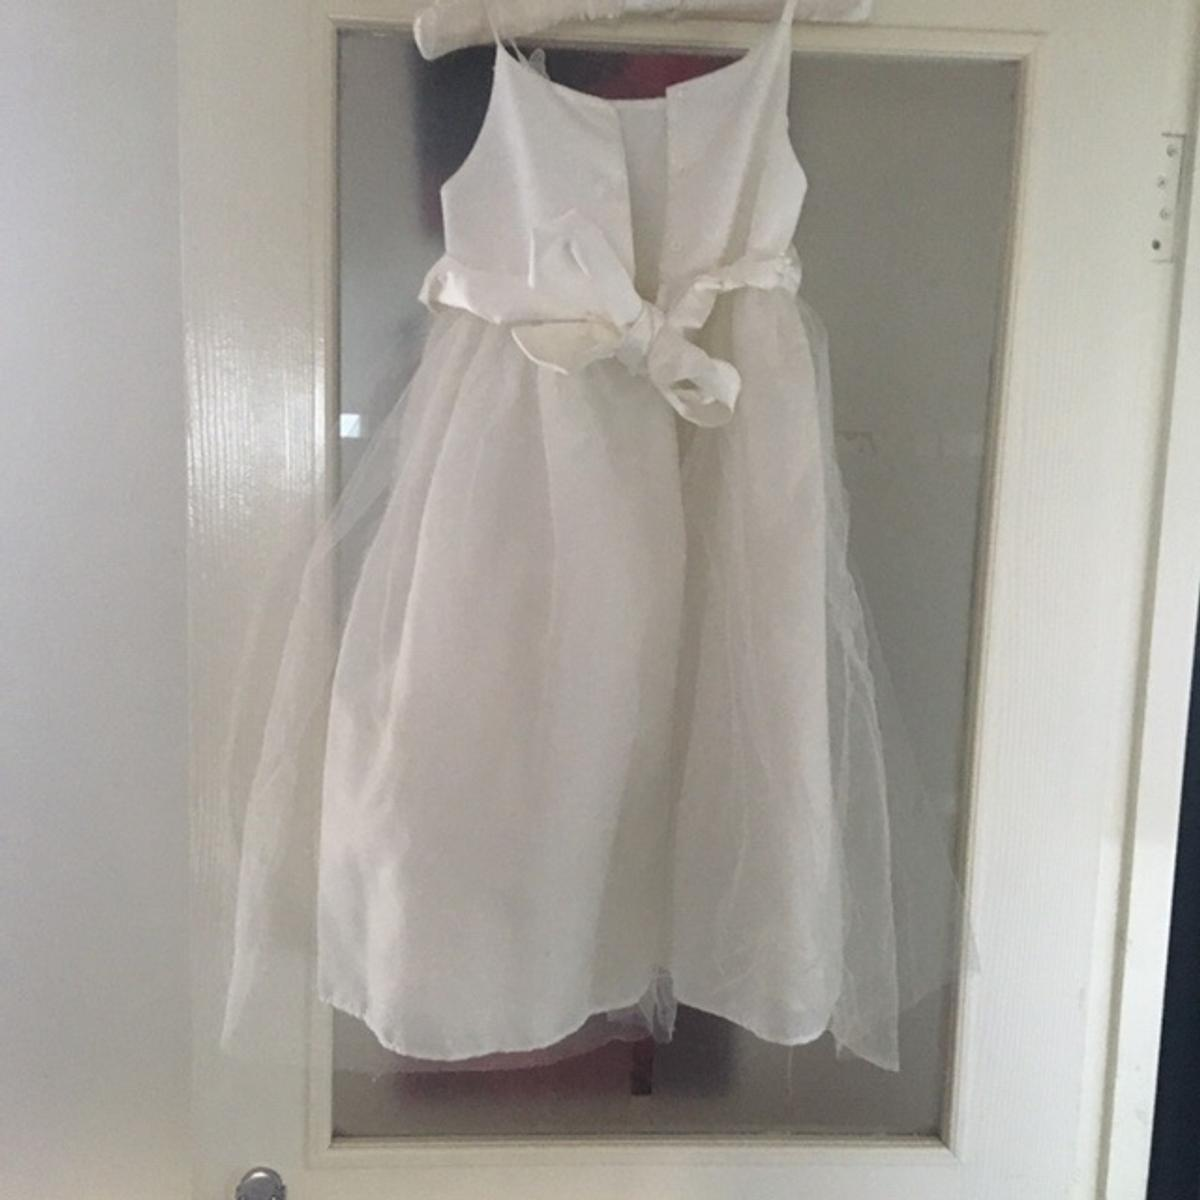 2x dresses aged 6 and 7 years. Really good condition and really pretty. Only worn once. Welcome to view before buying. £30 each or both for £50